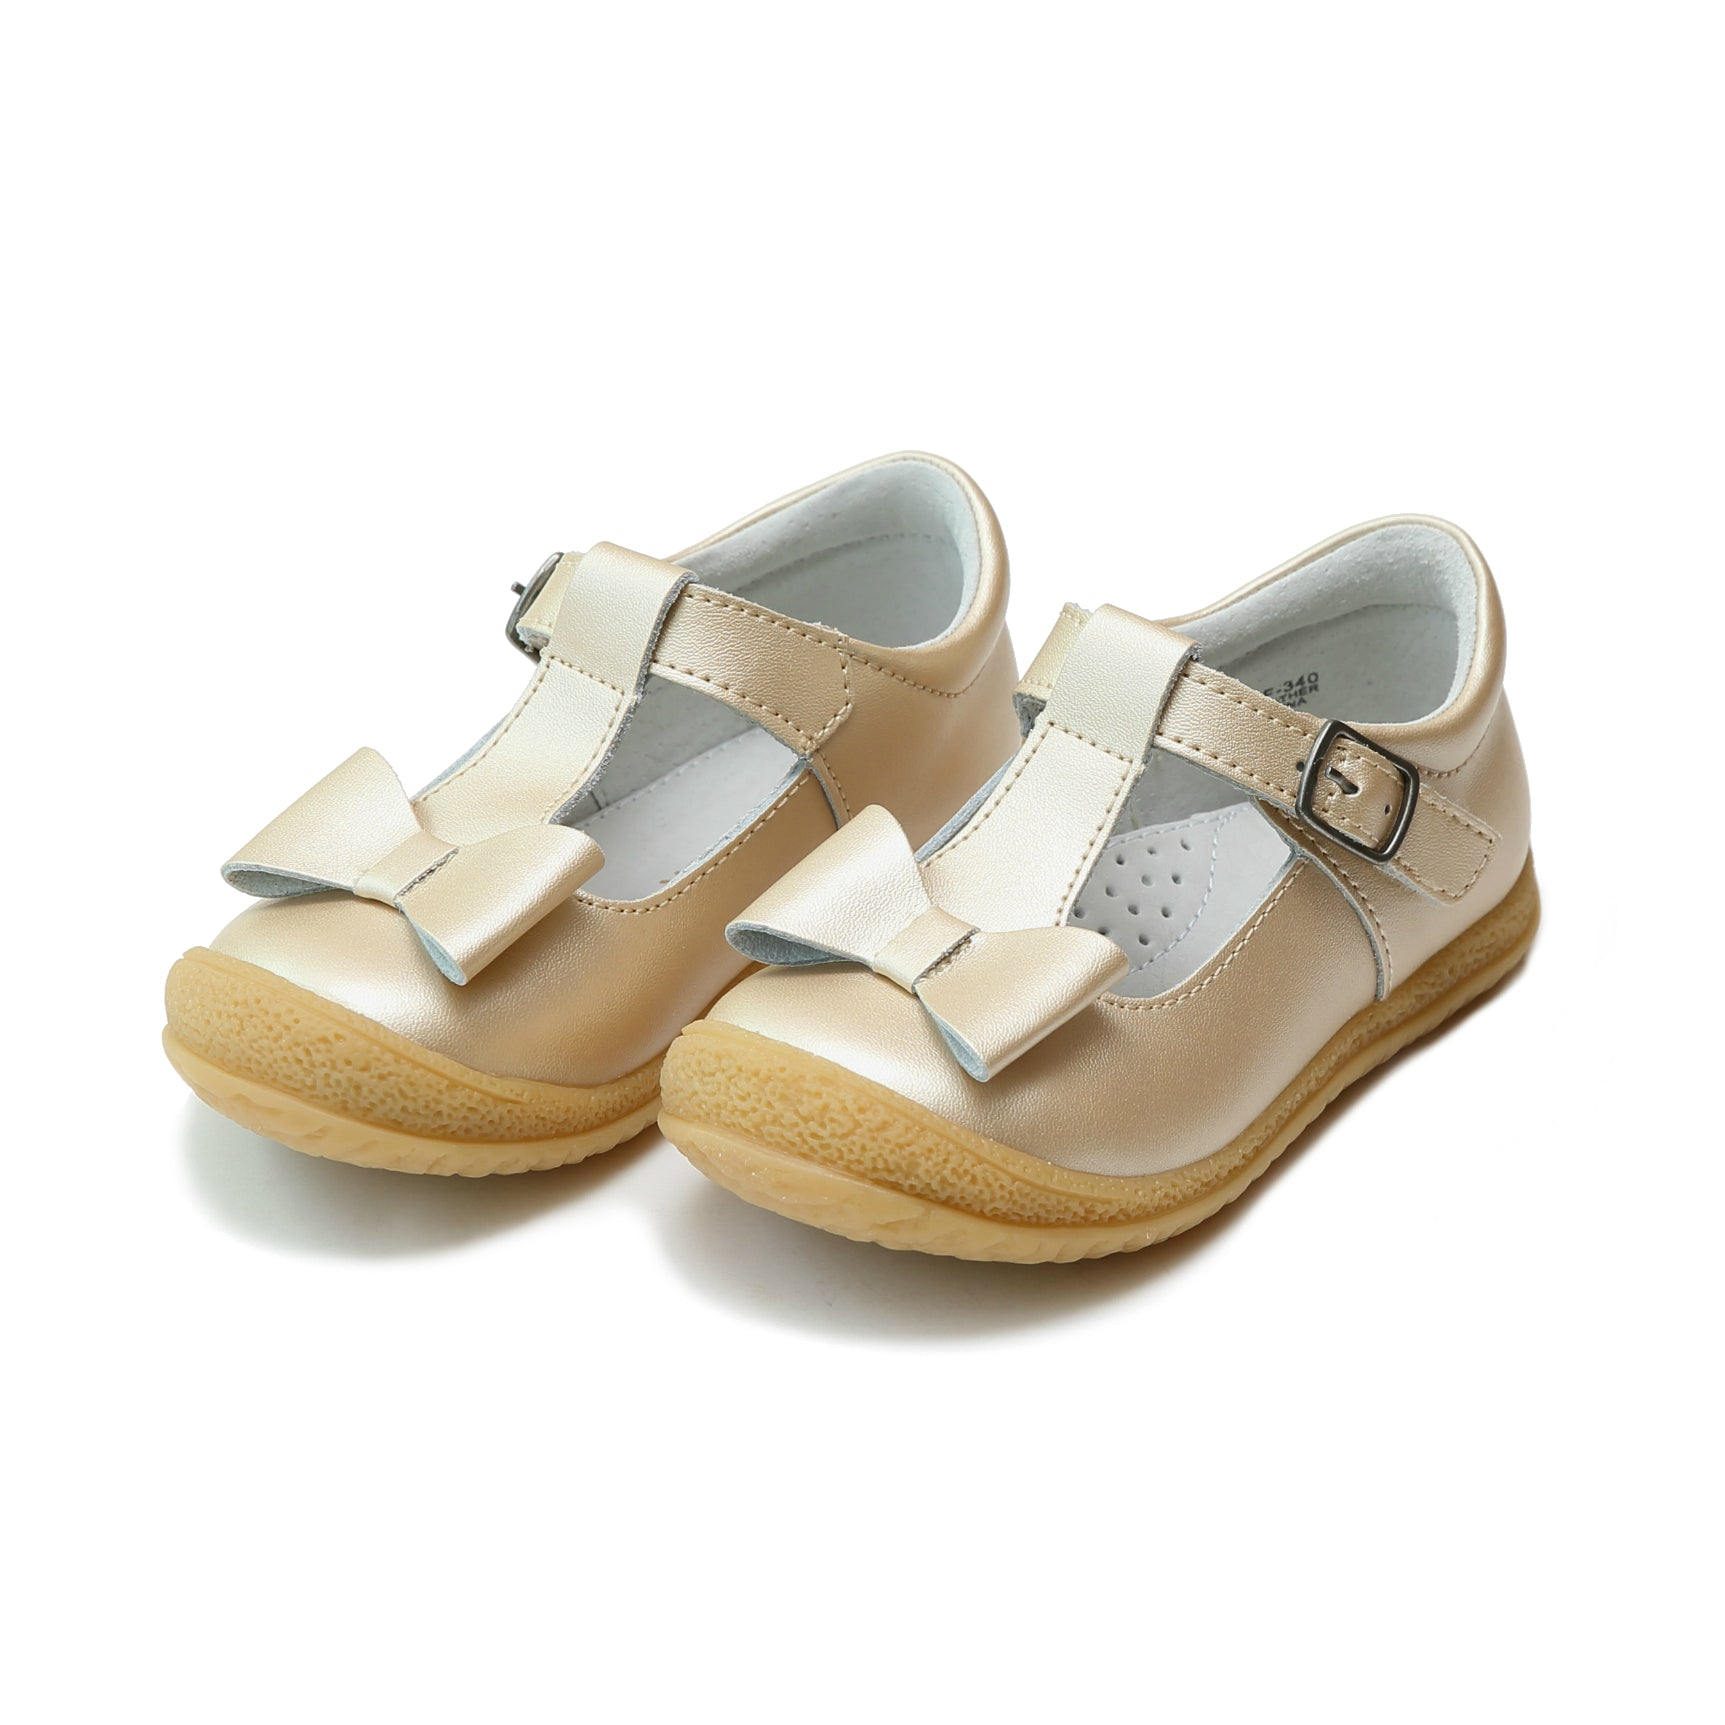 L'Amour Girls Shimmer Bow T-Strap Mary